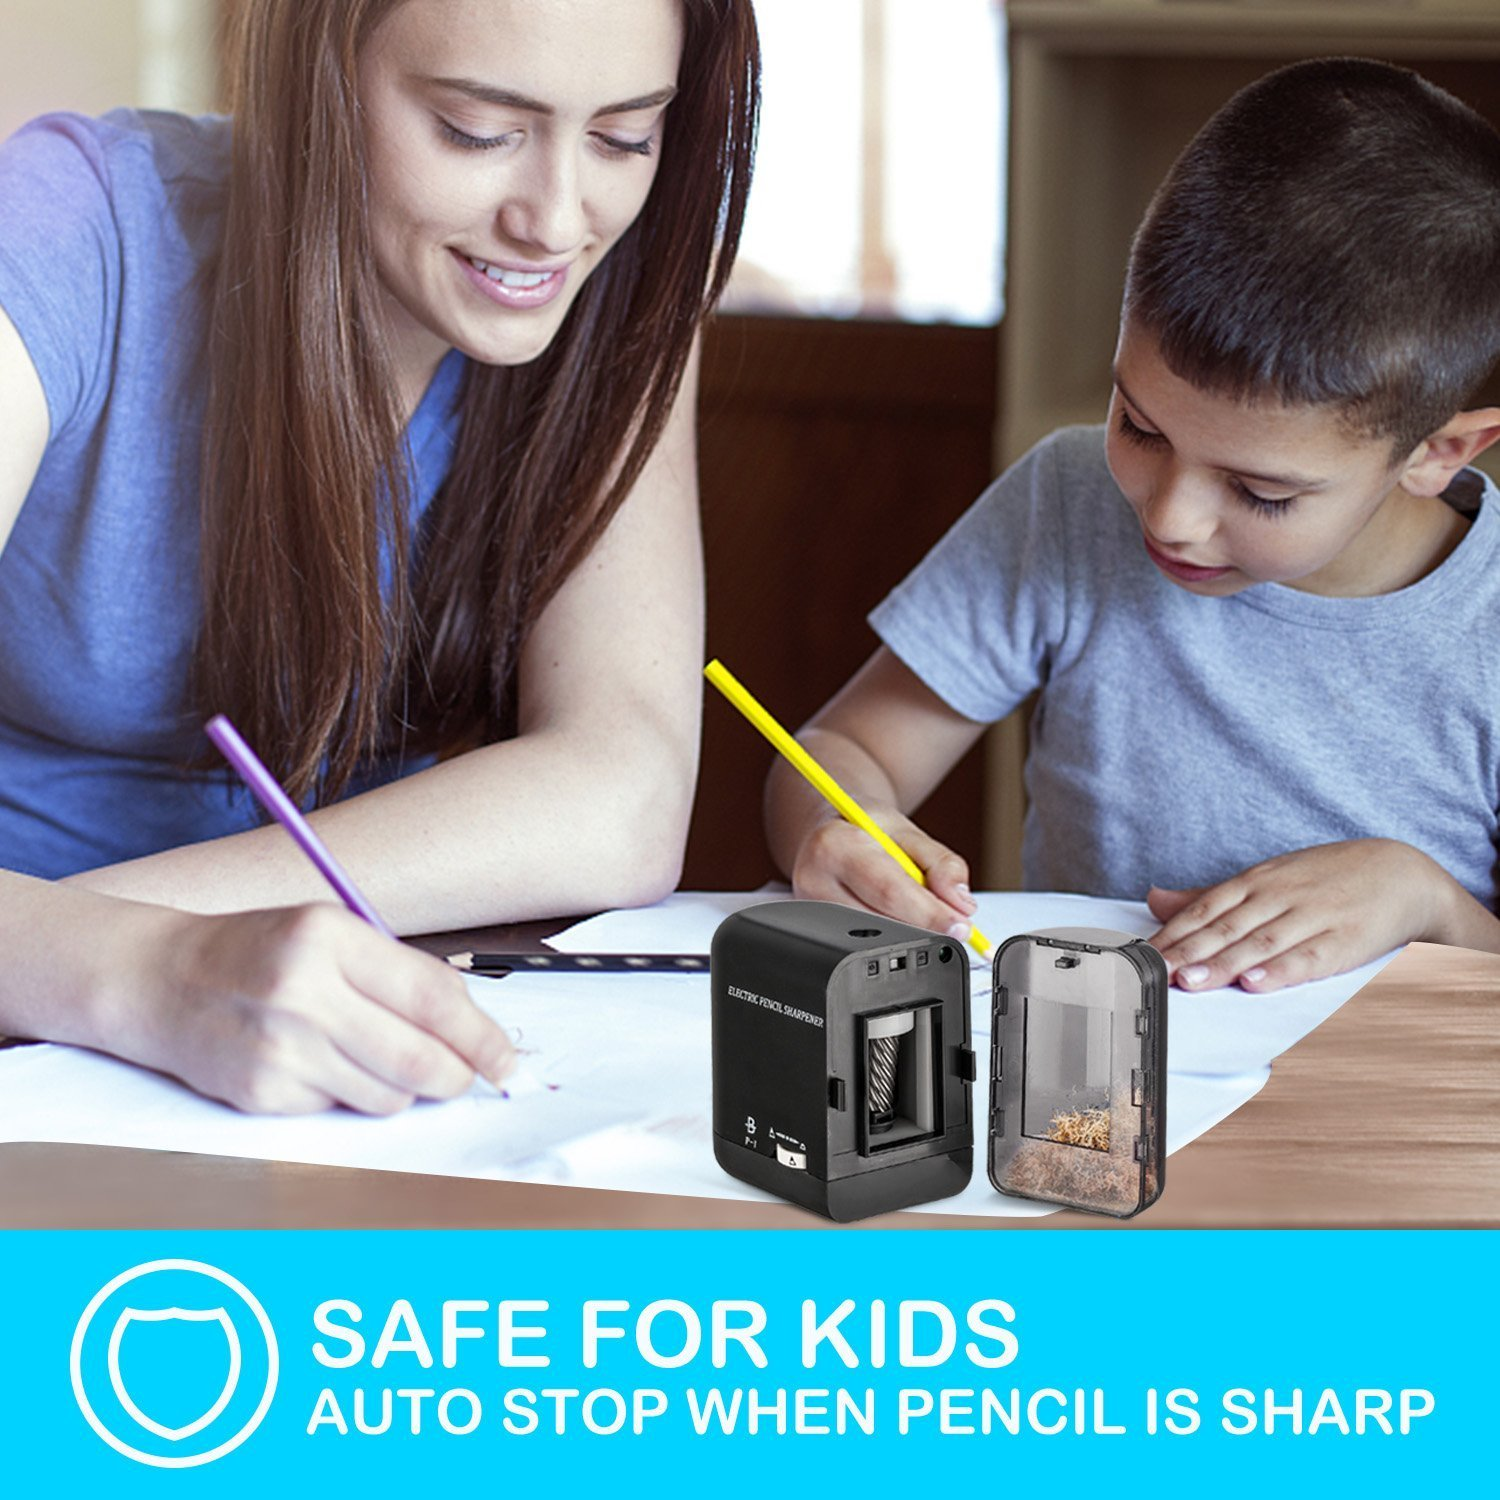 BOOCOSA Pencil Sharpener, BEST Heavy Duty Steel Blade, Electric Pencils Sharpener with Auto Stop for School Classroom Office Home – Precise Perfect Point Every time for Artists Kids Adults by BOOCOSA (Image #2)